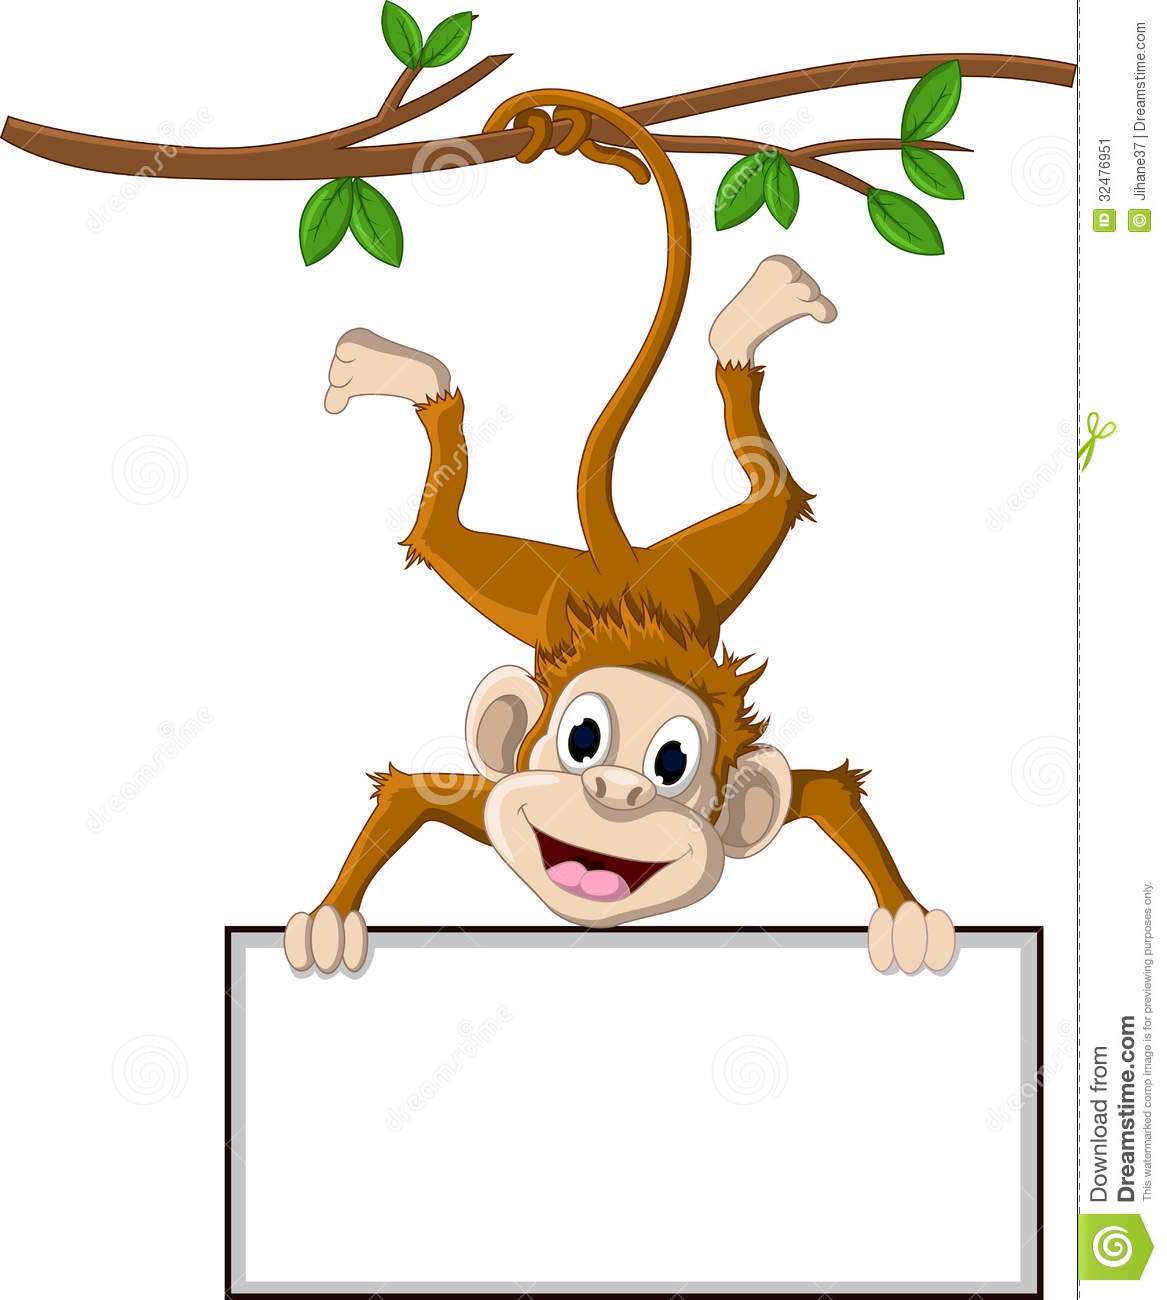 clipart monkey hanging from tree - photo #19